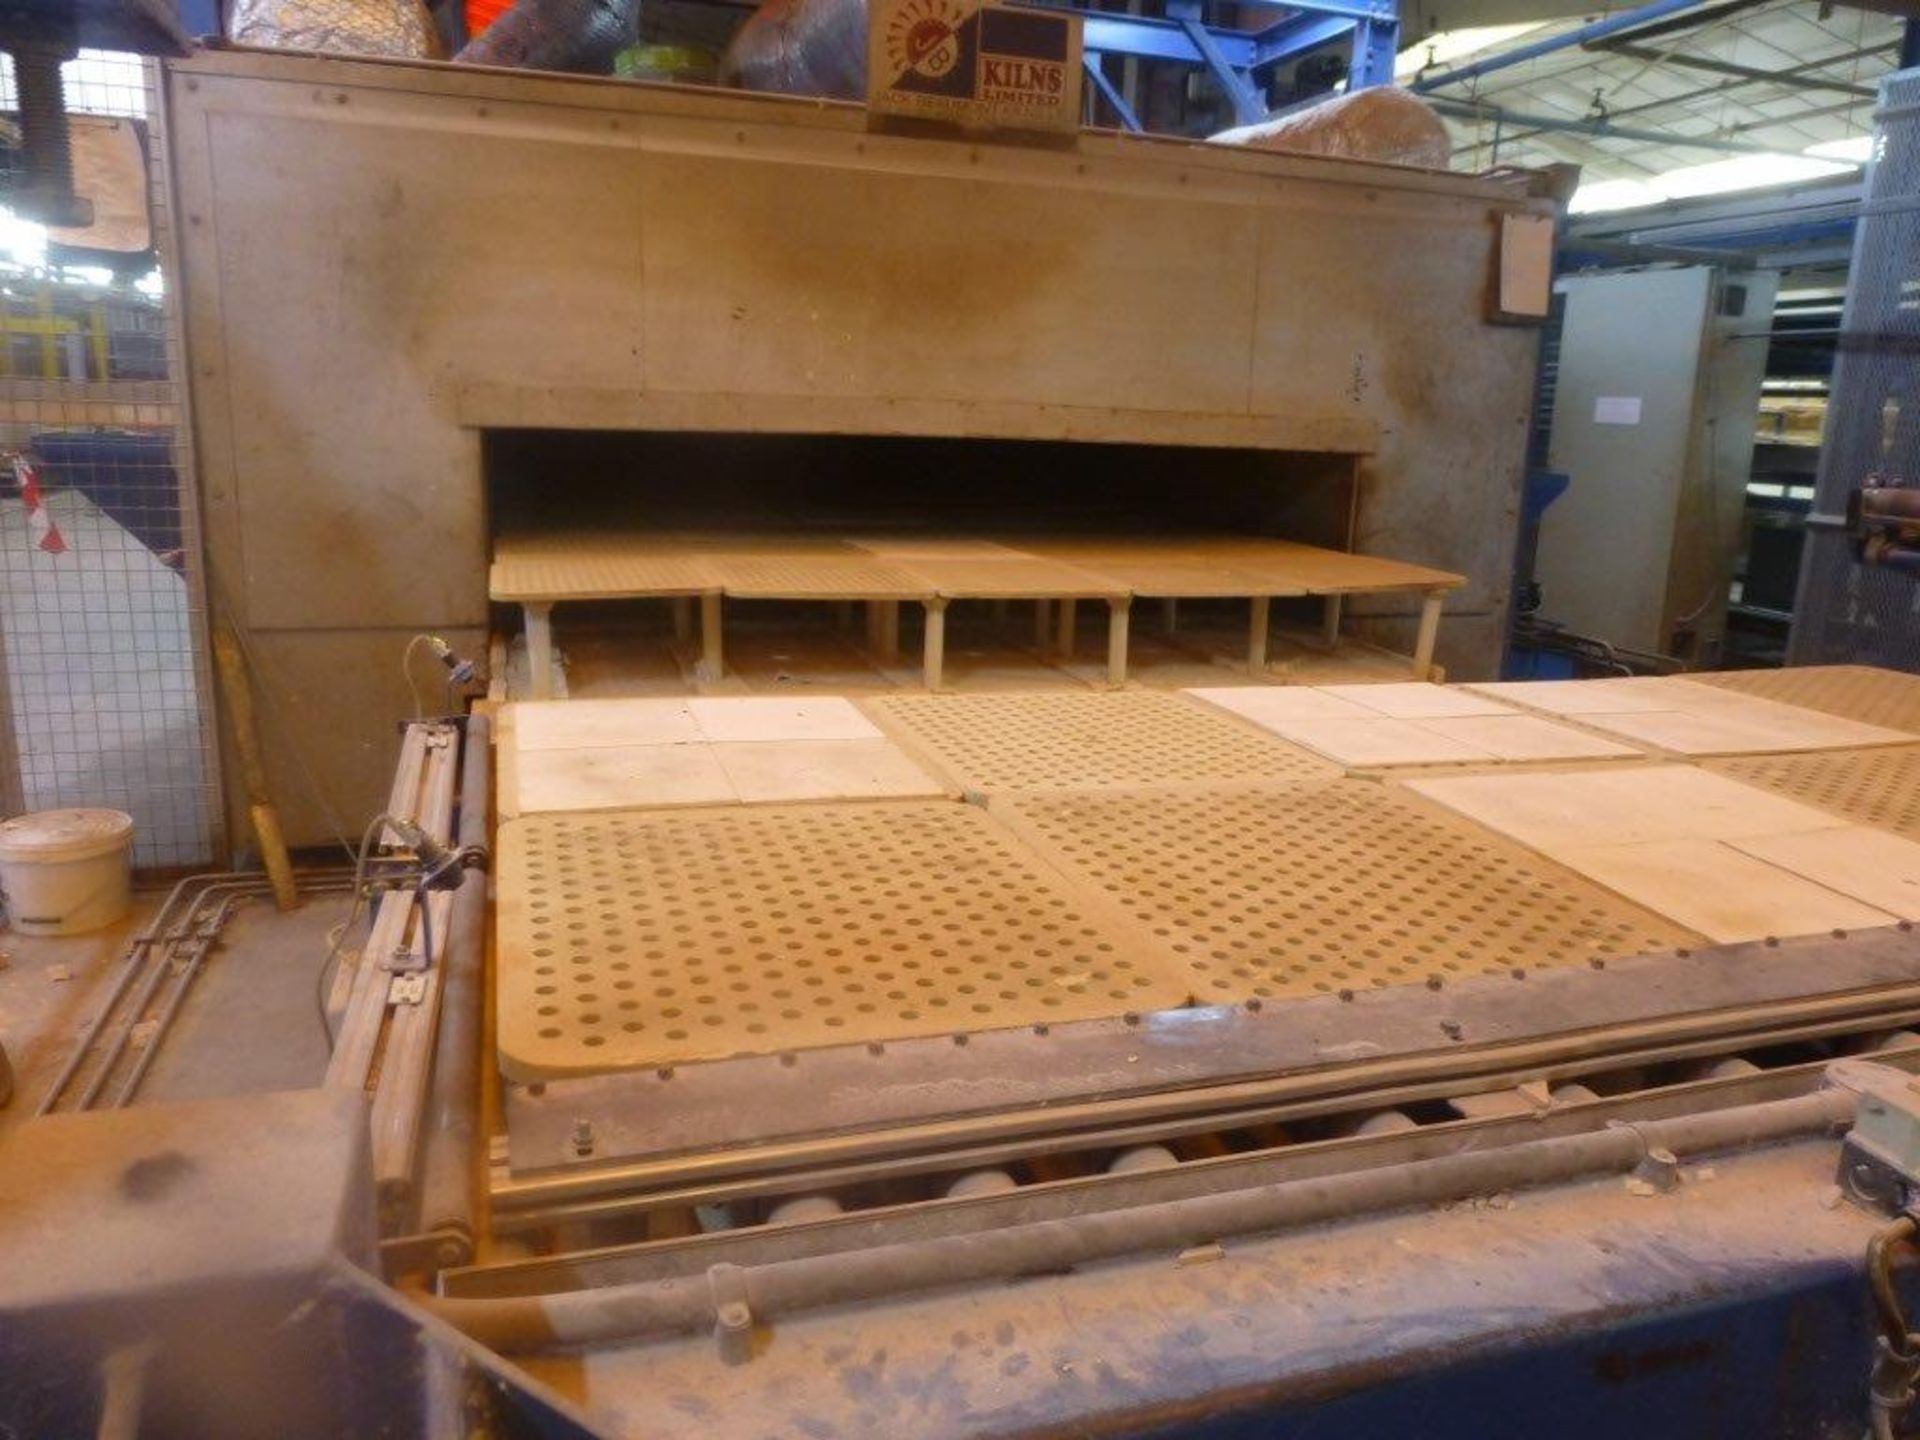 Lot 1 - Jack Beaumont gas fired 40 burner glost fast fire kiln with BEAD CT VIEW Interconnect control